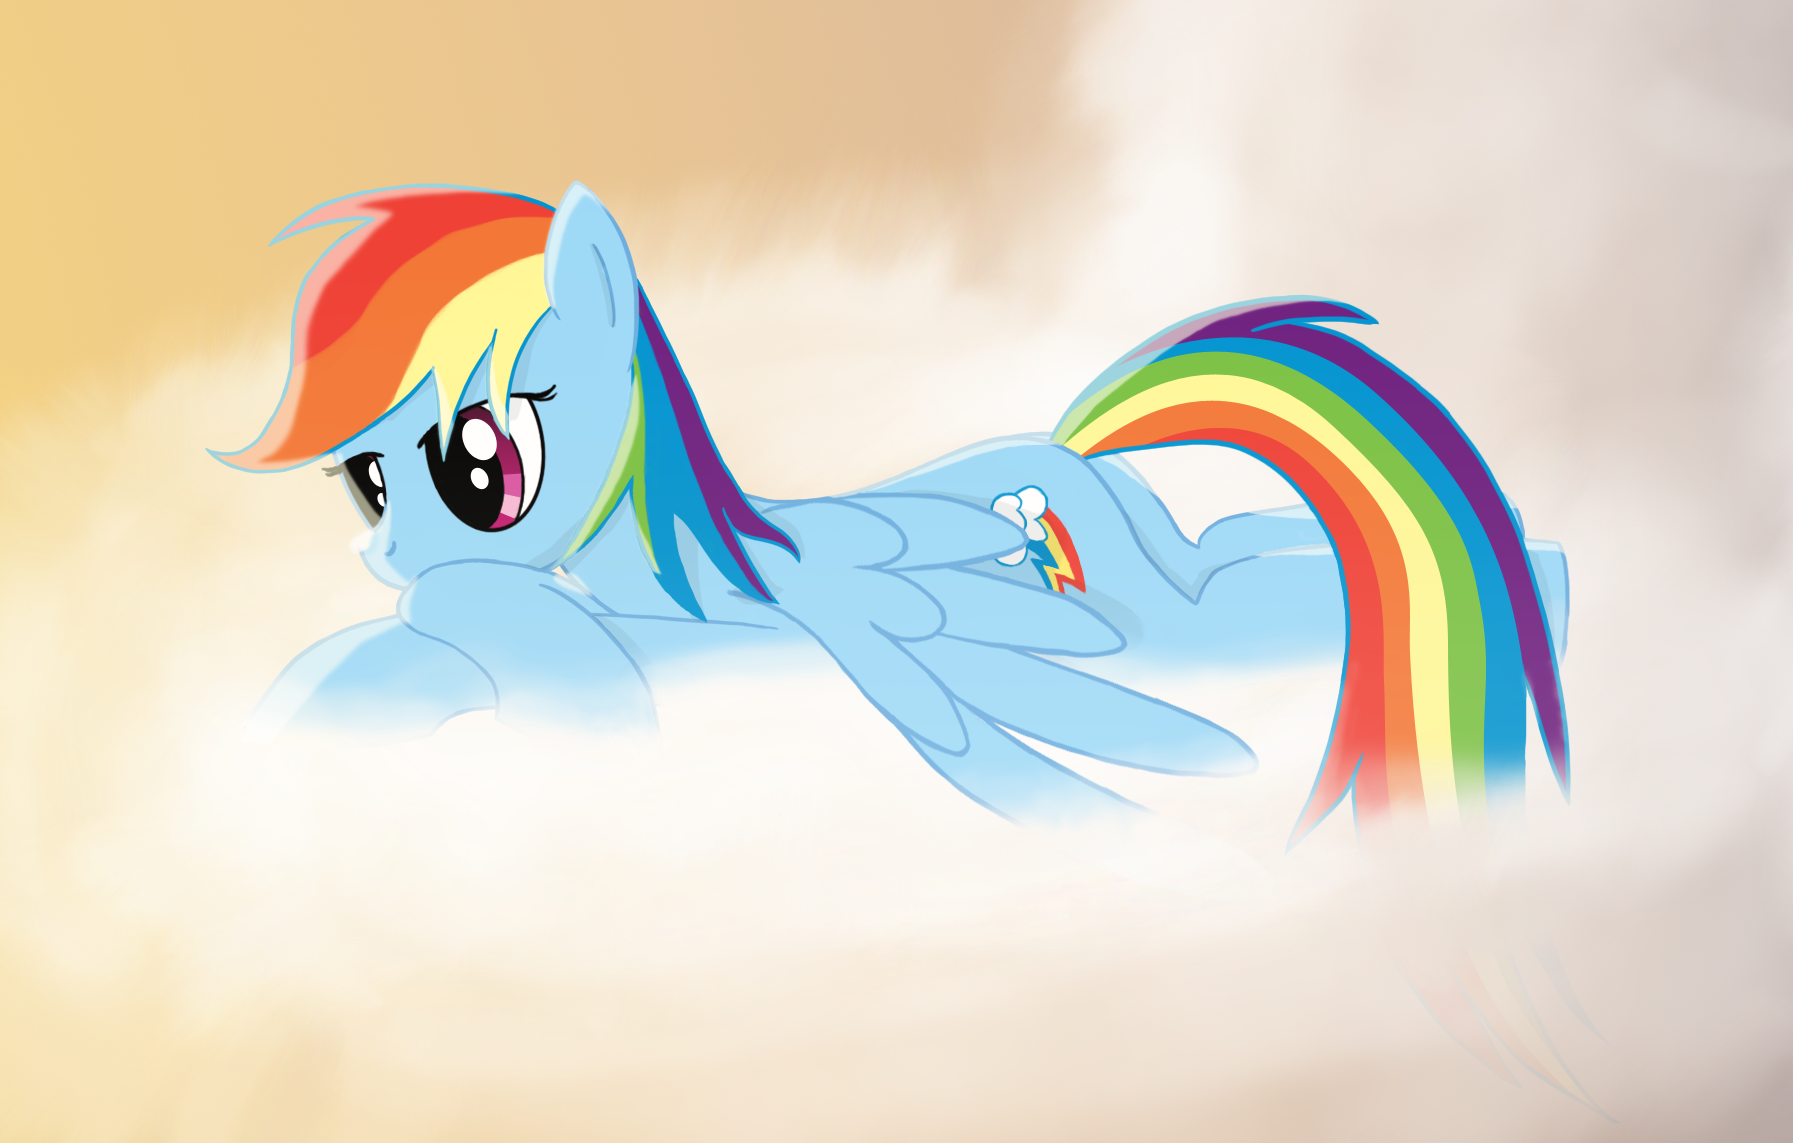 Dashie on a cloud by CrusierPL